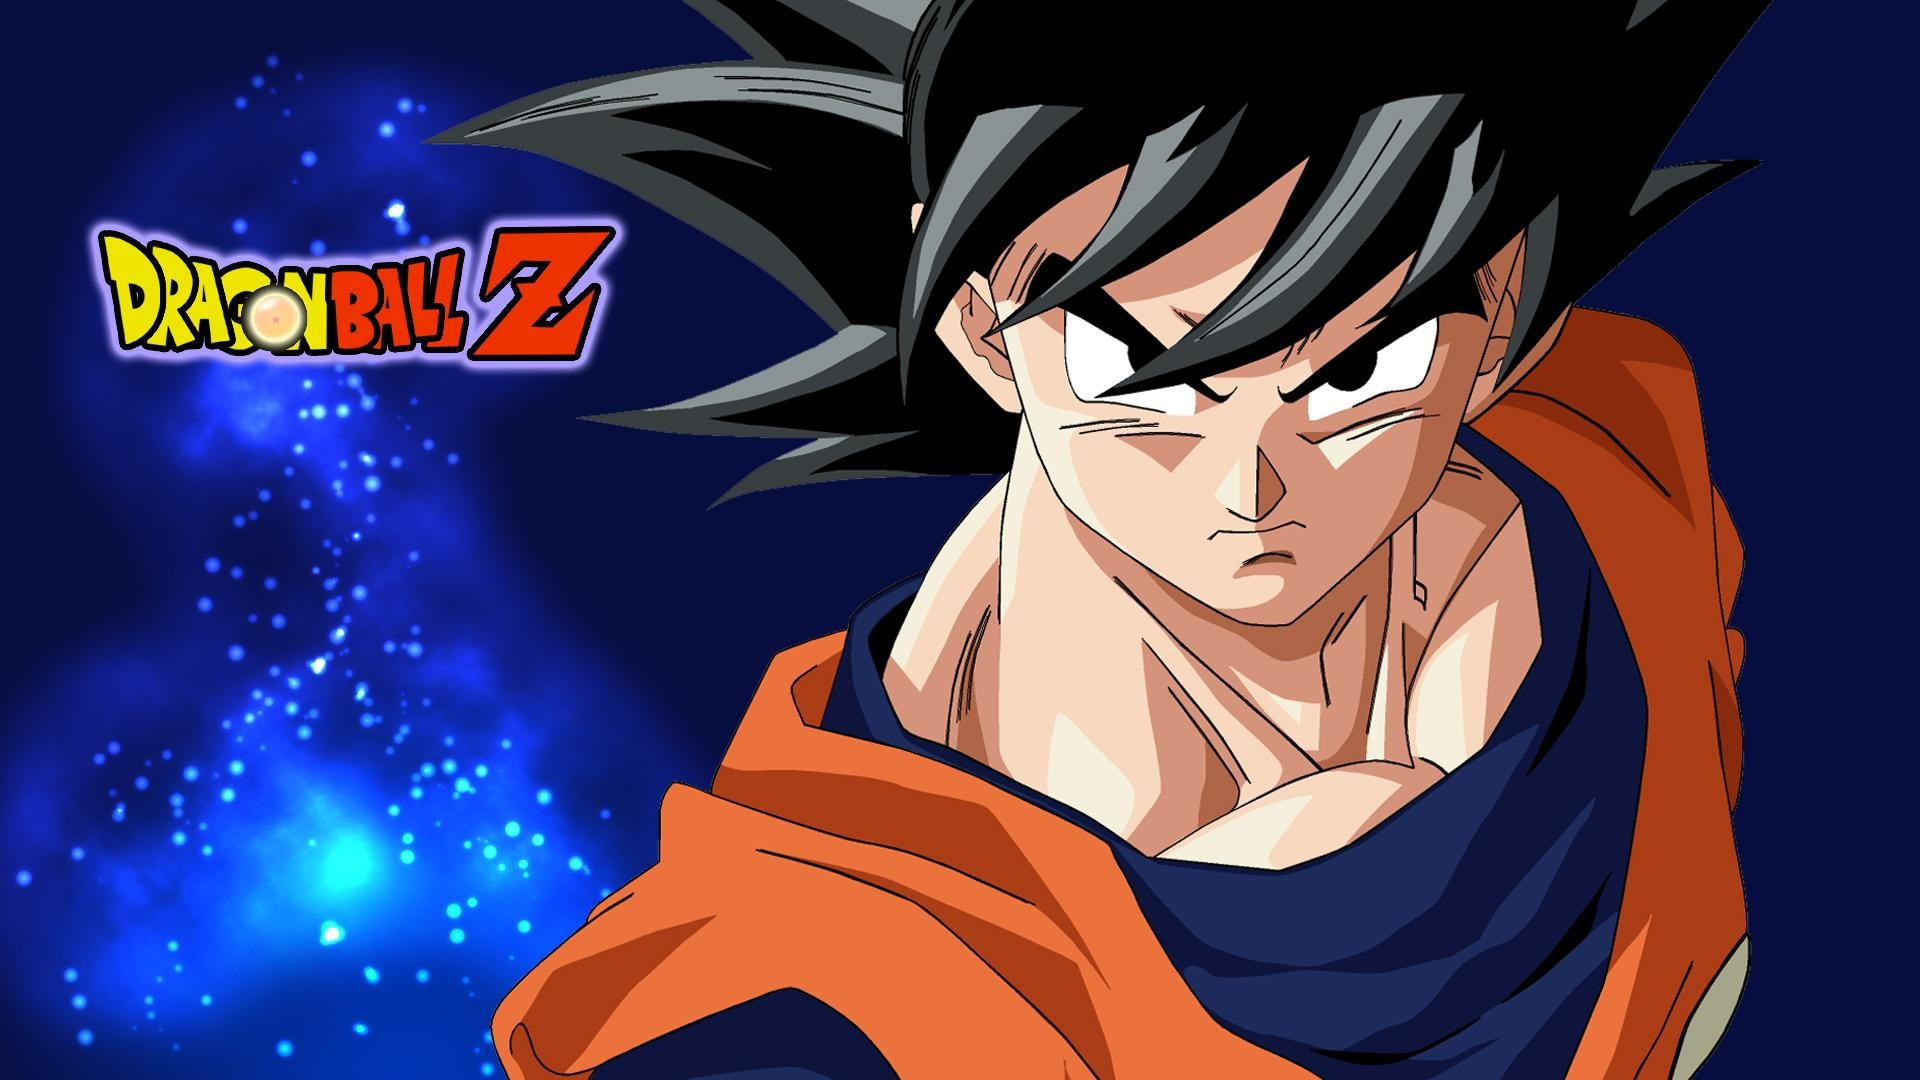 Dragon ball z wallpaper 25 of 49 son goku close up hd - Dragon ball super background music mp3 download ...